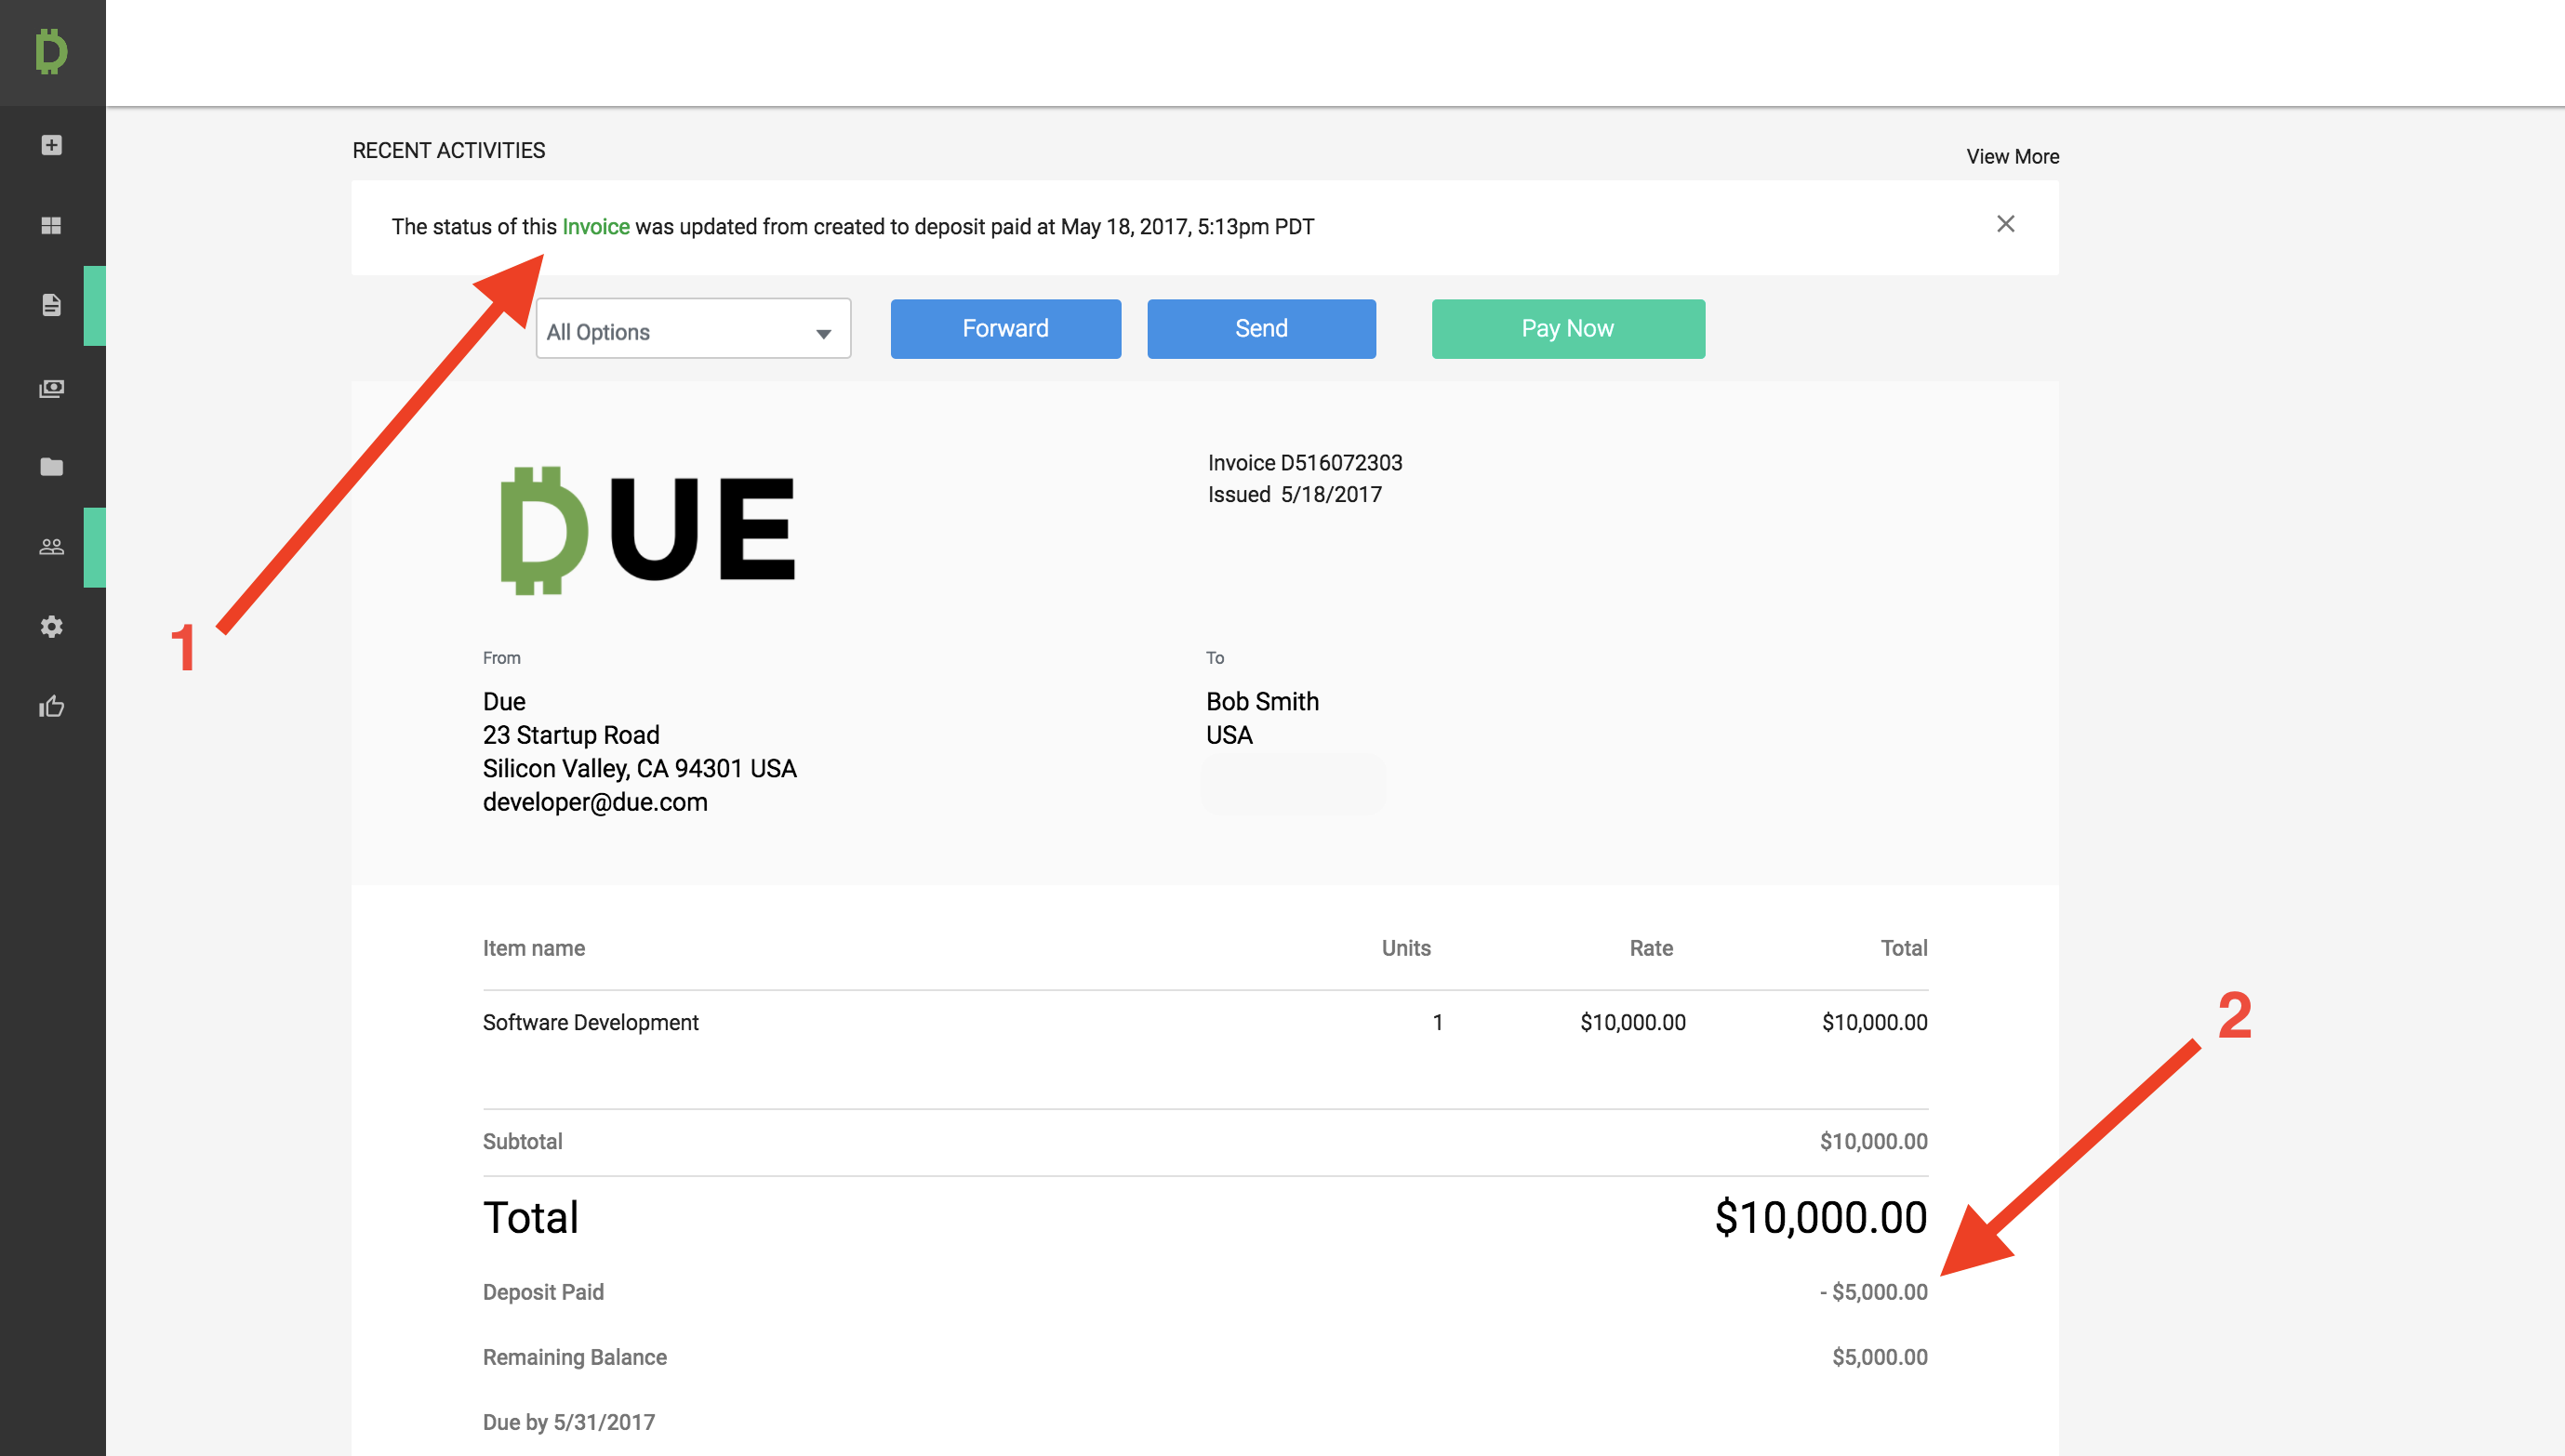 How To Request Deposits On Invoices Due - Invoice request